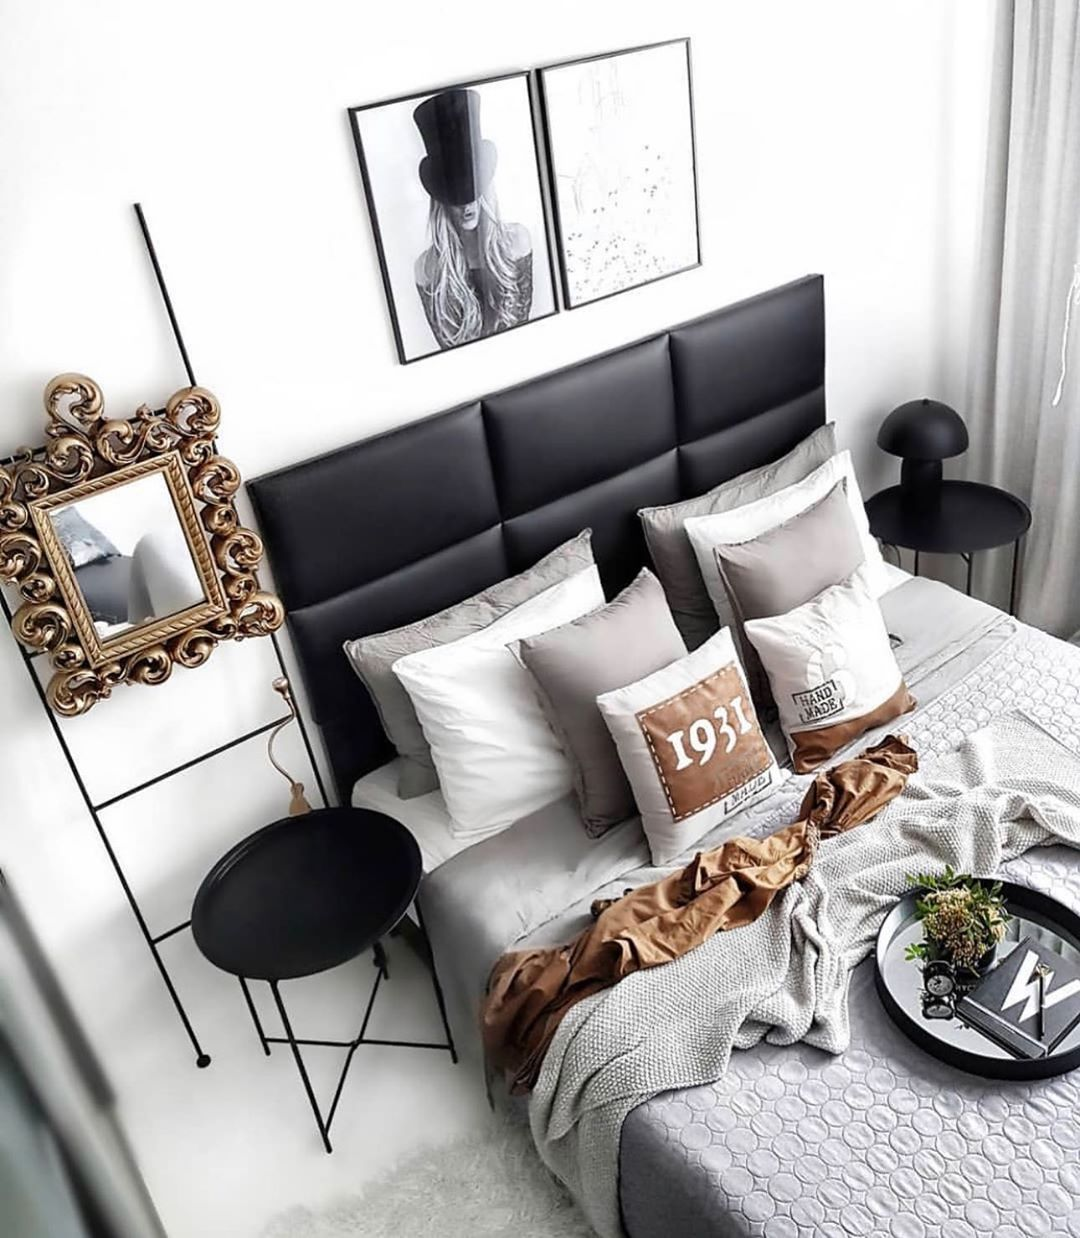 ⠀ #mynordicroombedroom Tag someone who would love this ❤️⠀ 📸 @iszi.aszi ⠀ ⠀ Be a part of our family and tag your photo with #mynordicroom 💋⠀ ⠀ ...⠀ ⠀ ❗️Never miss out on post from @mynordicroom. Make sure to turn on post notifications ❗️ ⠀ 💕Dont miss out on your daily Nordic interior design and lifestyle inspiration! Follow us on Facebook 👤 ⠀ ⠀ 👉 Go follow @mywandertude for ✈️ and 🍴 inspiration ⠀⠀ ⠀ ... ⠀ #soveværelse #sovrum #soveværelset #soveværelsesindretning #soveværelsesinspiration #